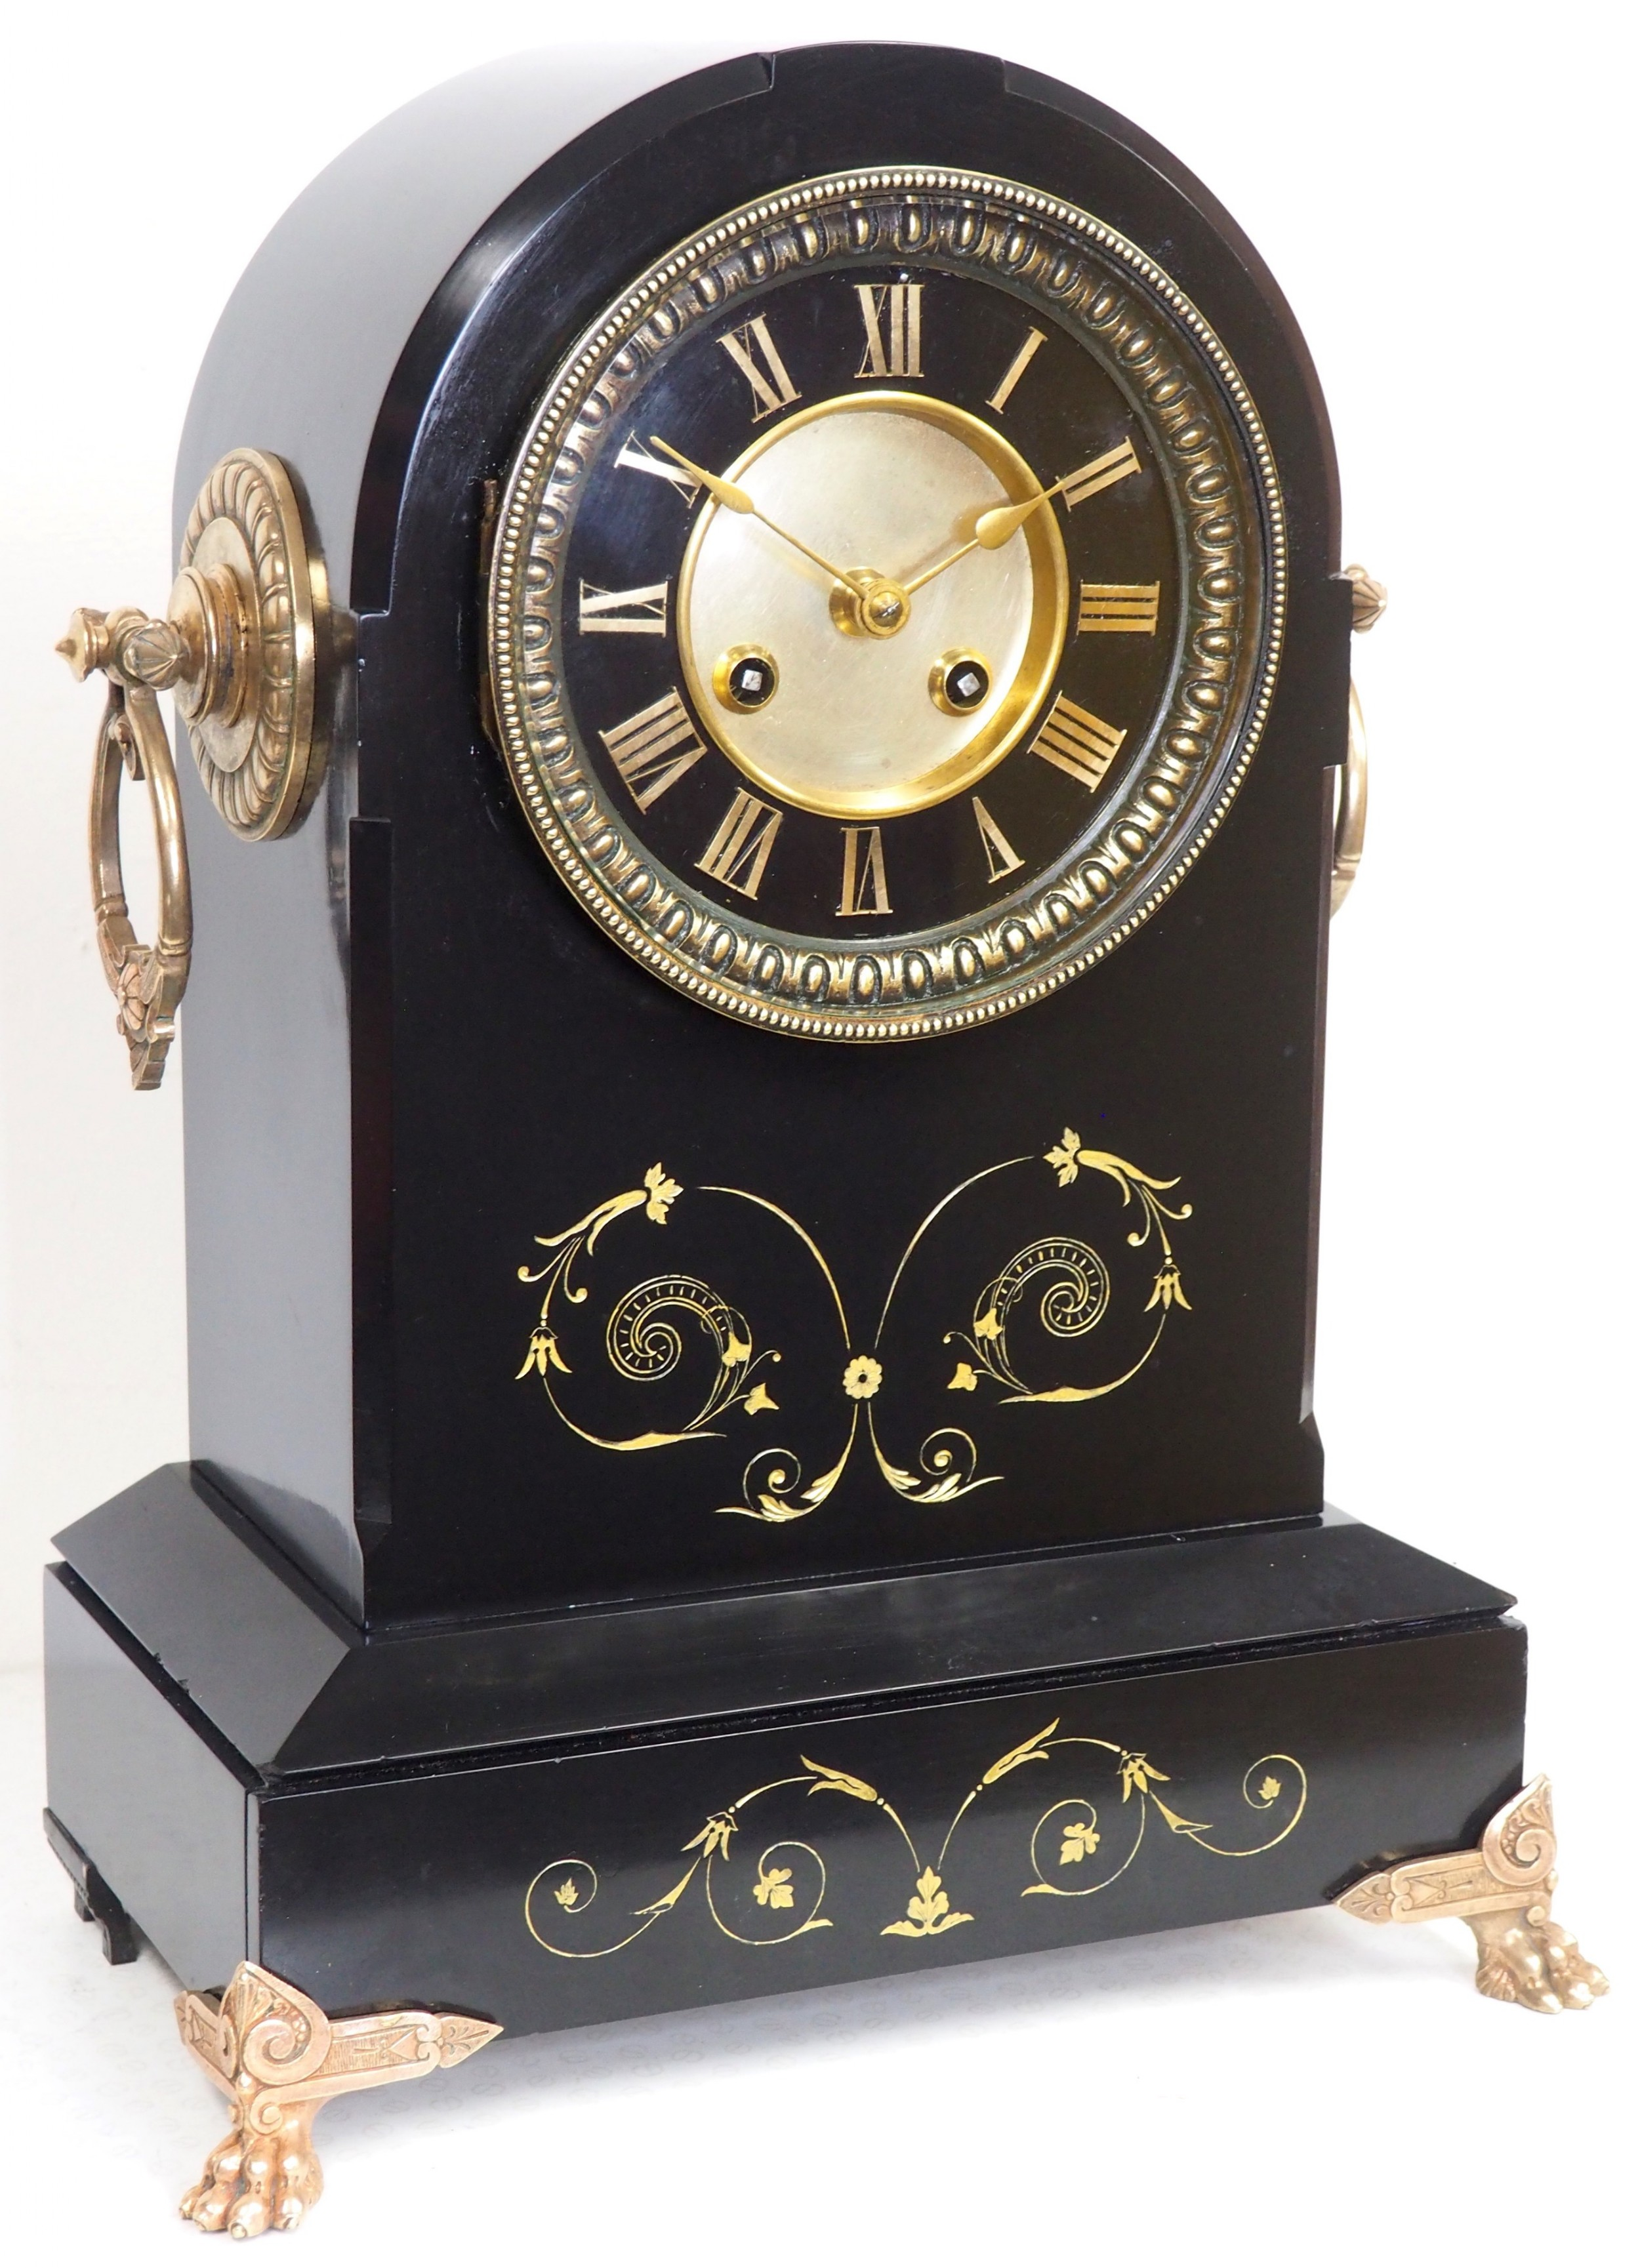 antique french slate mantel clock 8day arch top striking mantle clock with gilt decoration